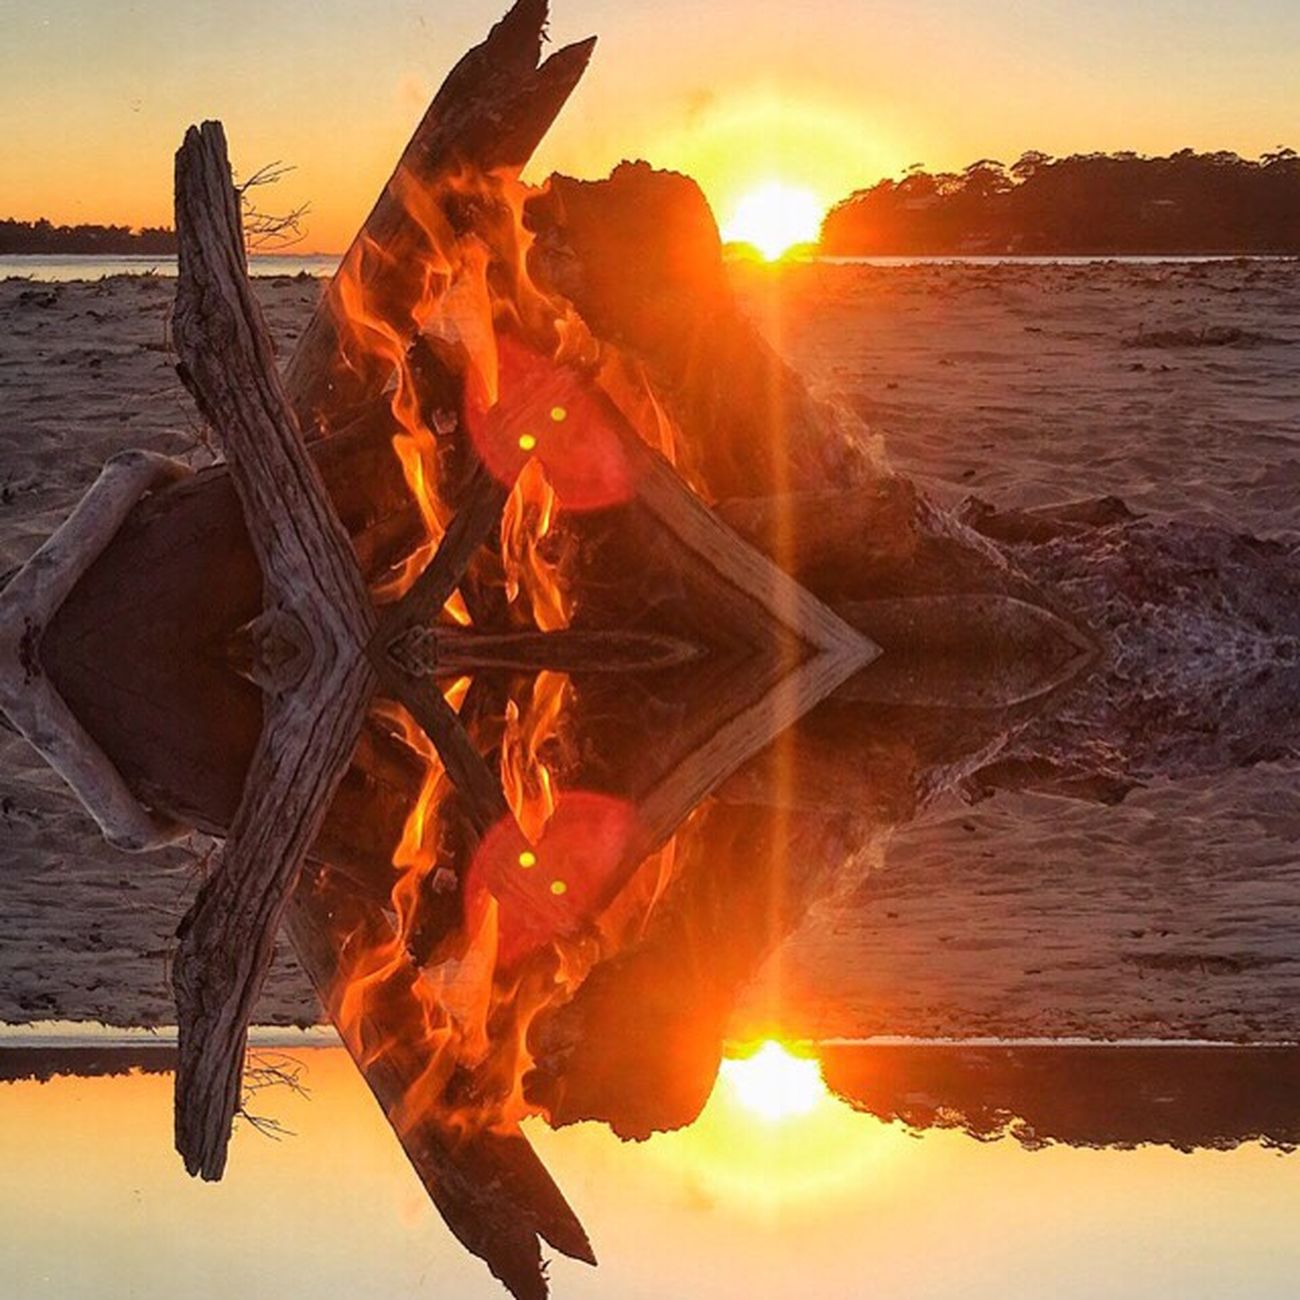 Campfire Campfire Art Australia Sunrise_sunsets_aroundworld